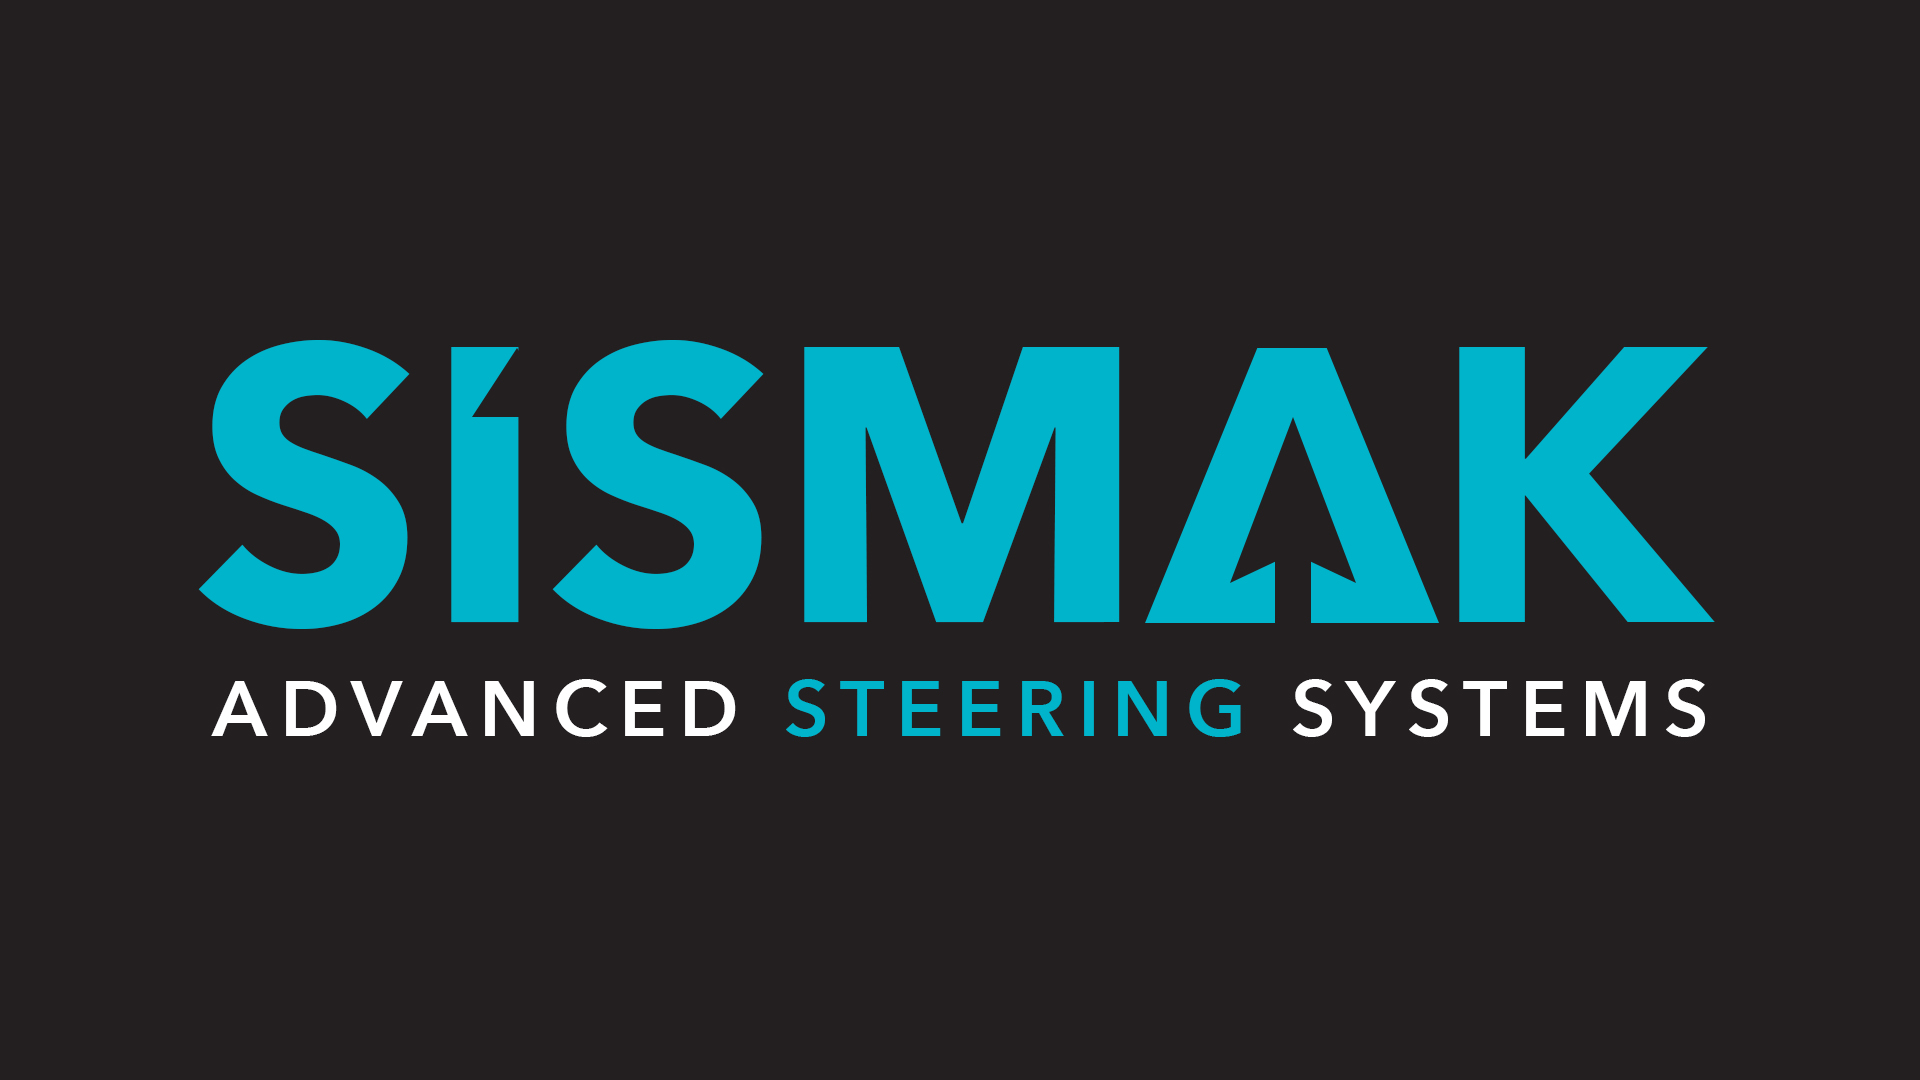 sismak-advanced-steering-systems